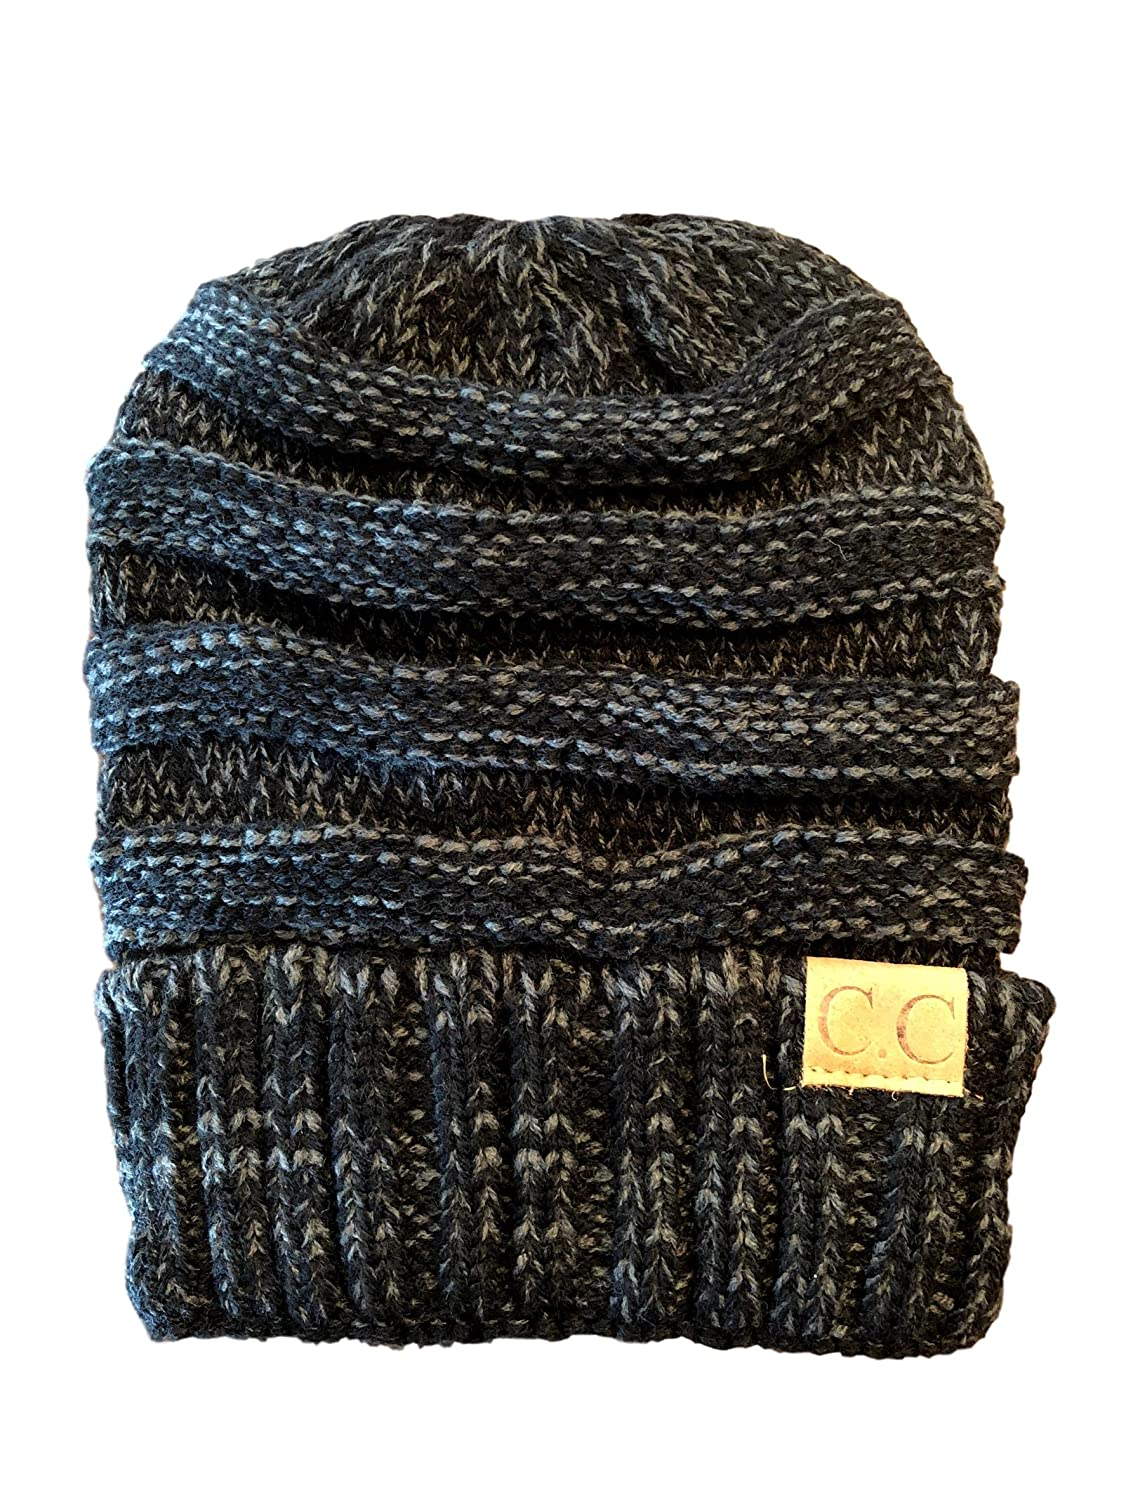 Black Grey Fleck Women's, Teen's, Kids, CC Style Knit Winter Hat